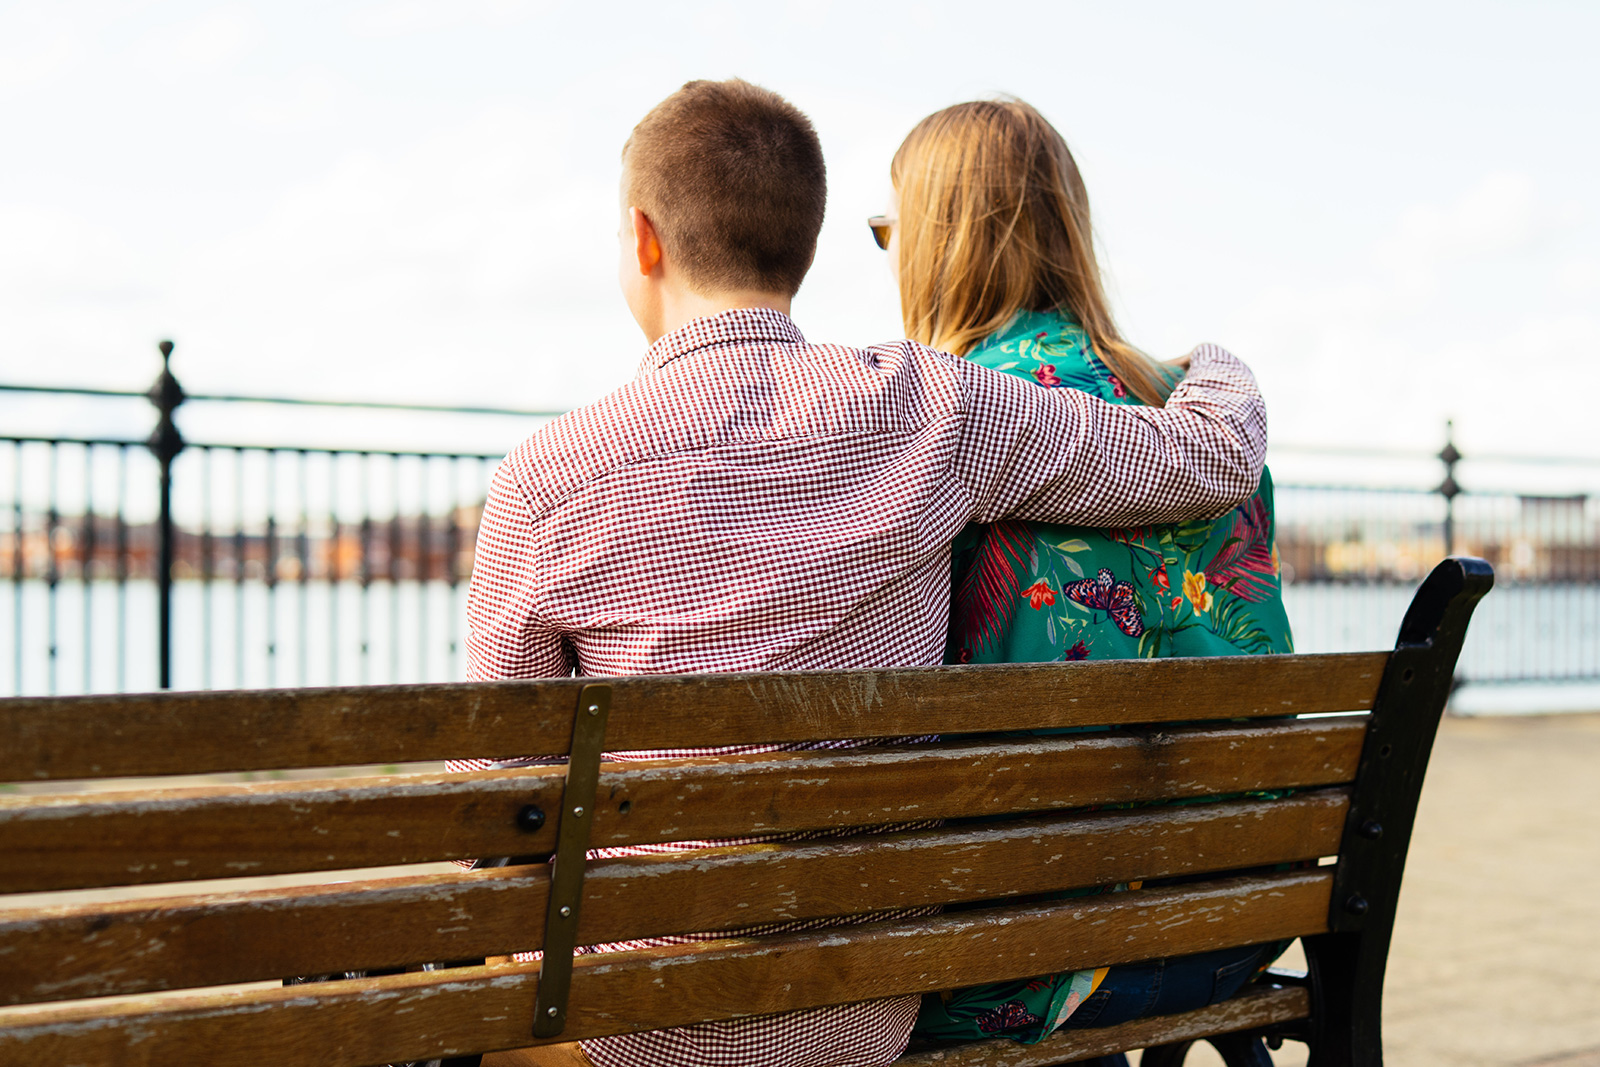 Couple sitting on bench facing a river